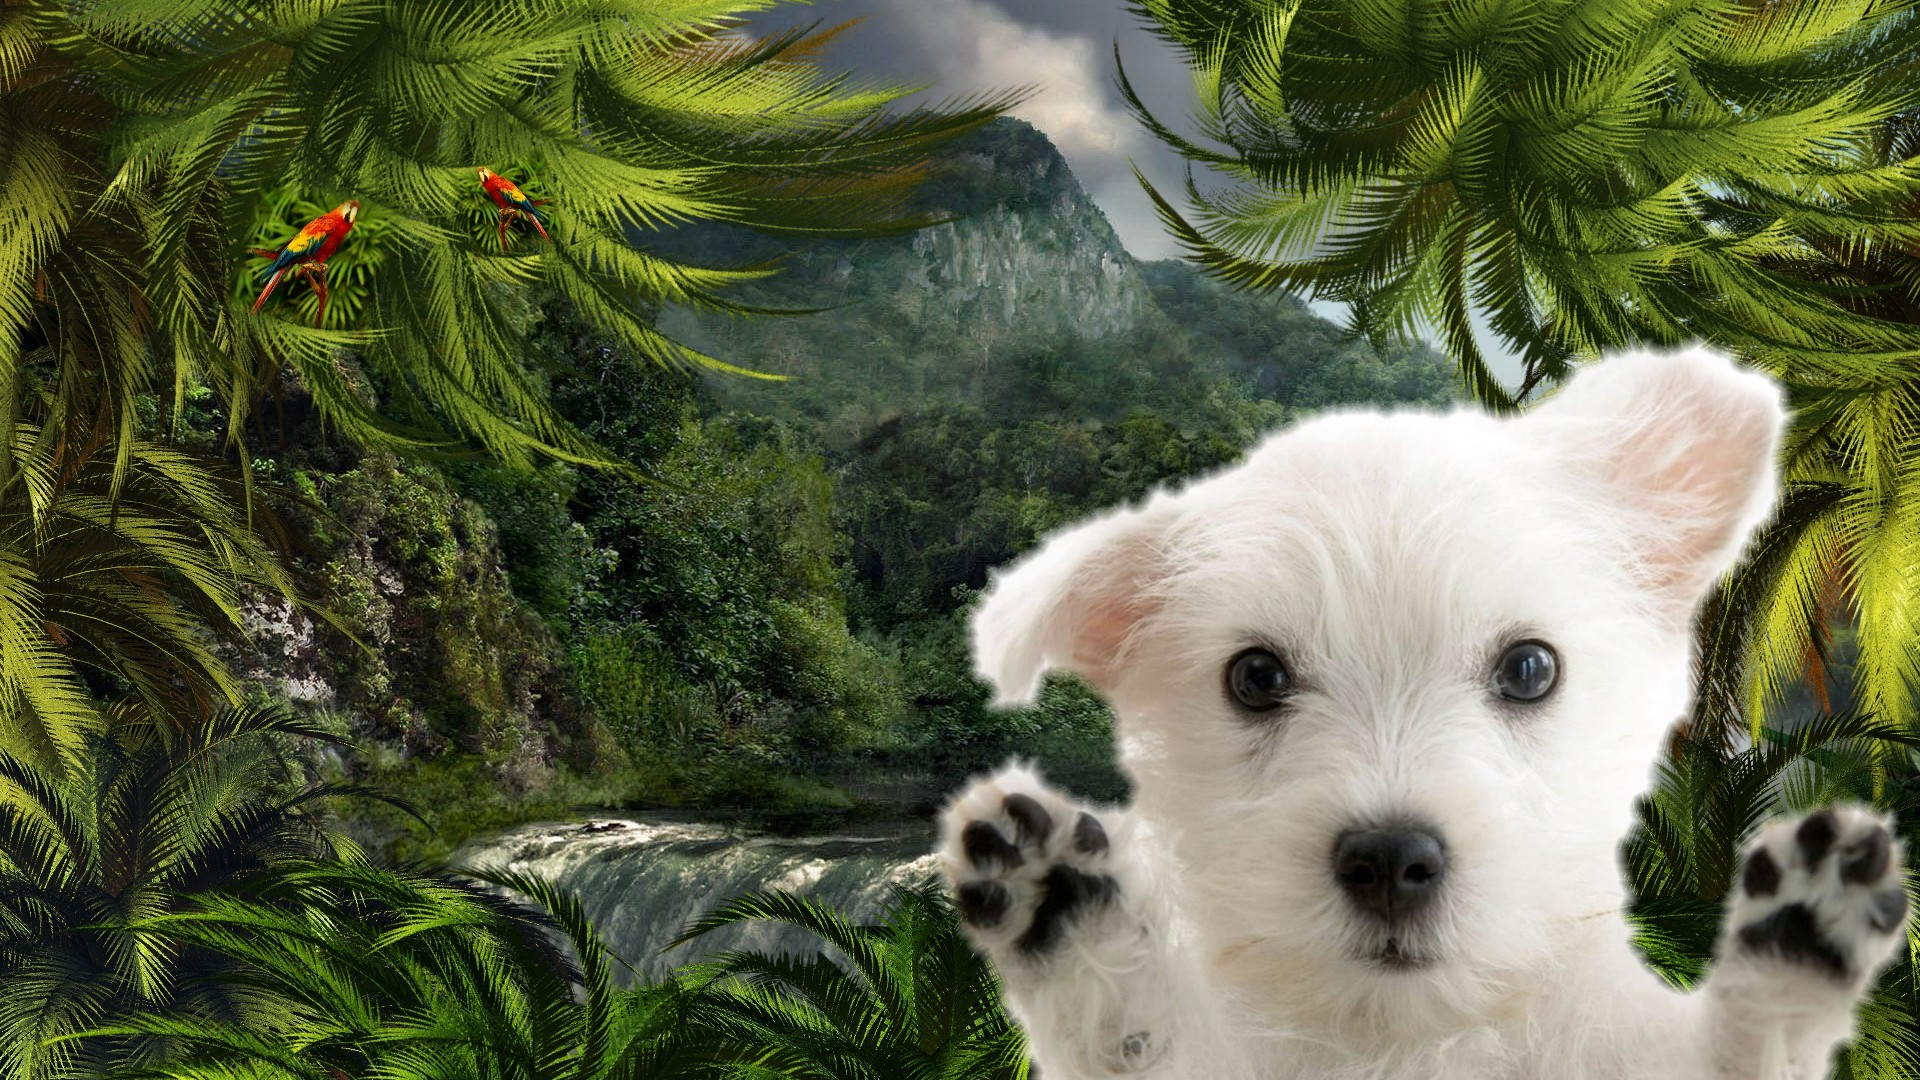 Animated Jungle Wallpaper Lost Puppy Wallpapers Lost Puppy Stock Photos